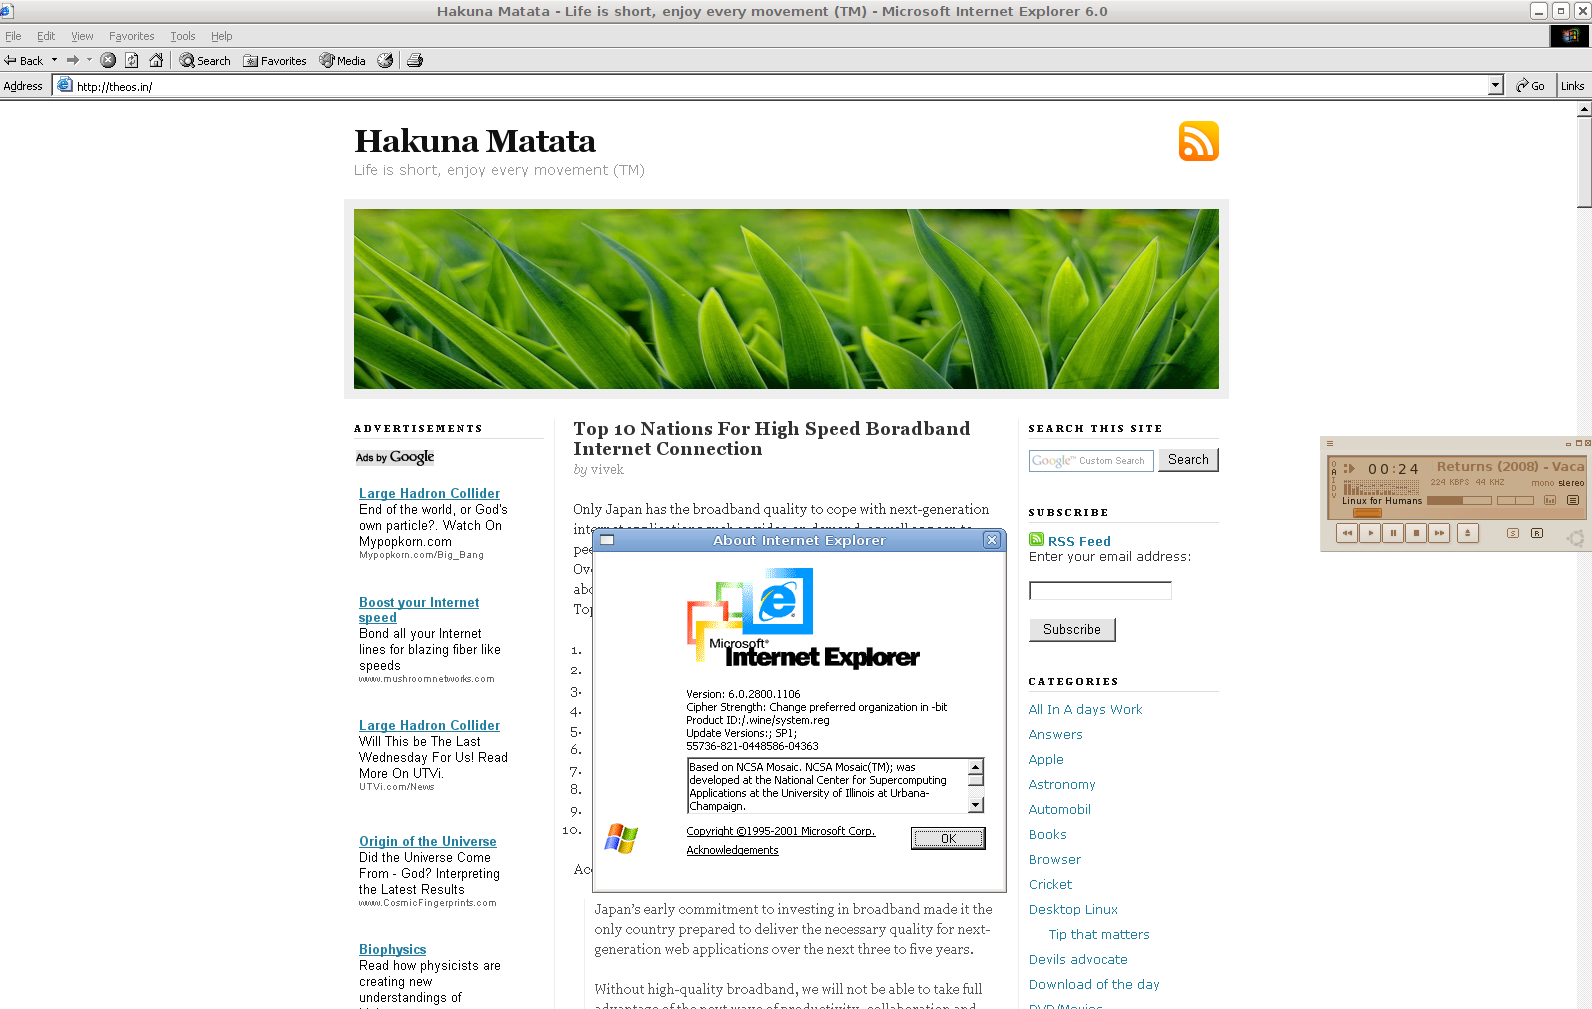 How To Install Microsoft Internet Explorer on Linux in Two